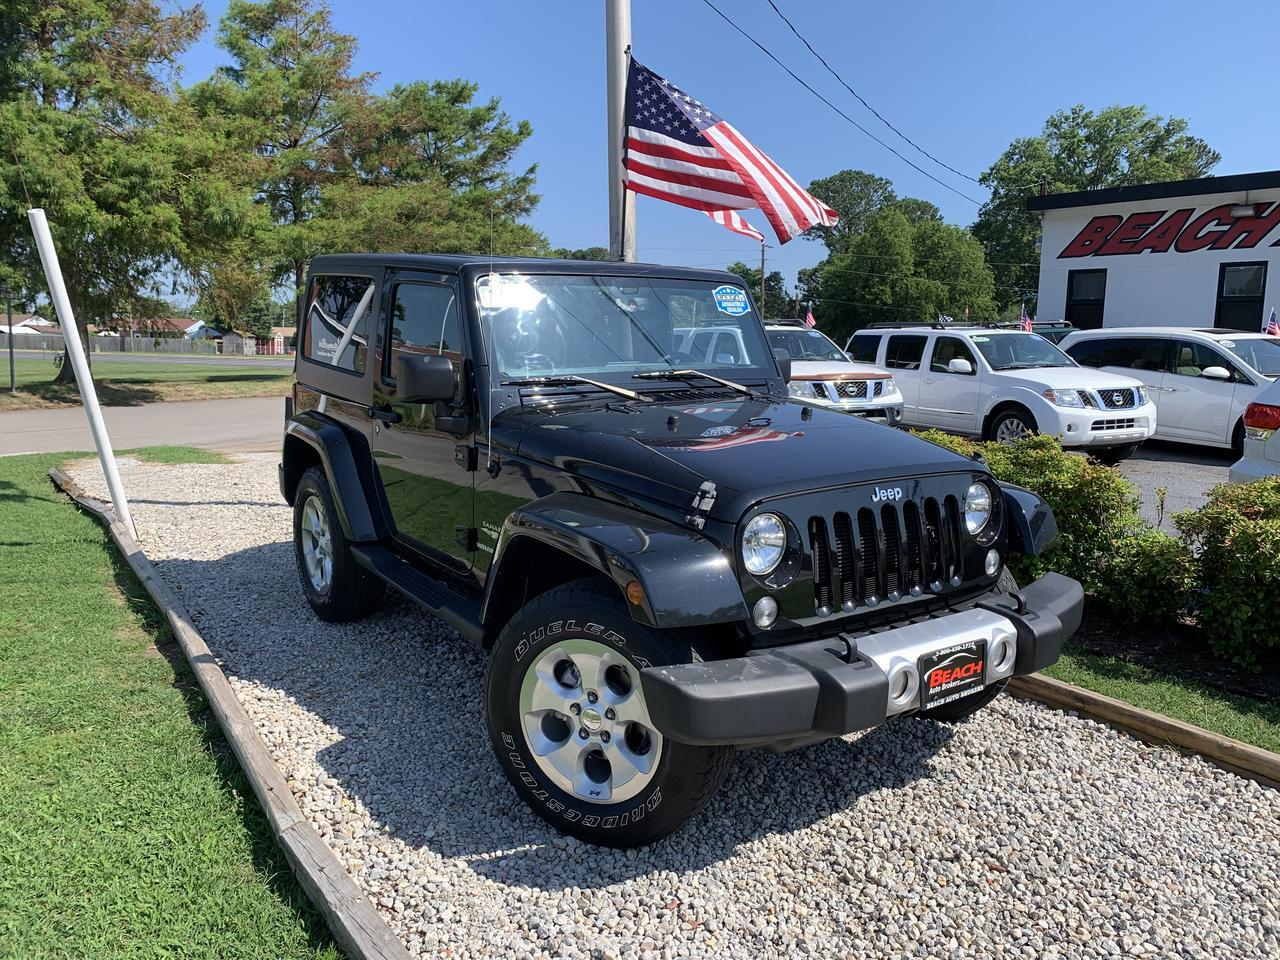 2015 JEEP WRANGLER SAHARA SPORT 4X4, WARRANTY, SIRIUS RADIO, HARD TOP, AUX PORT, 1 OWNER, CLEAN CARFAX! Norfolk VA